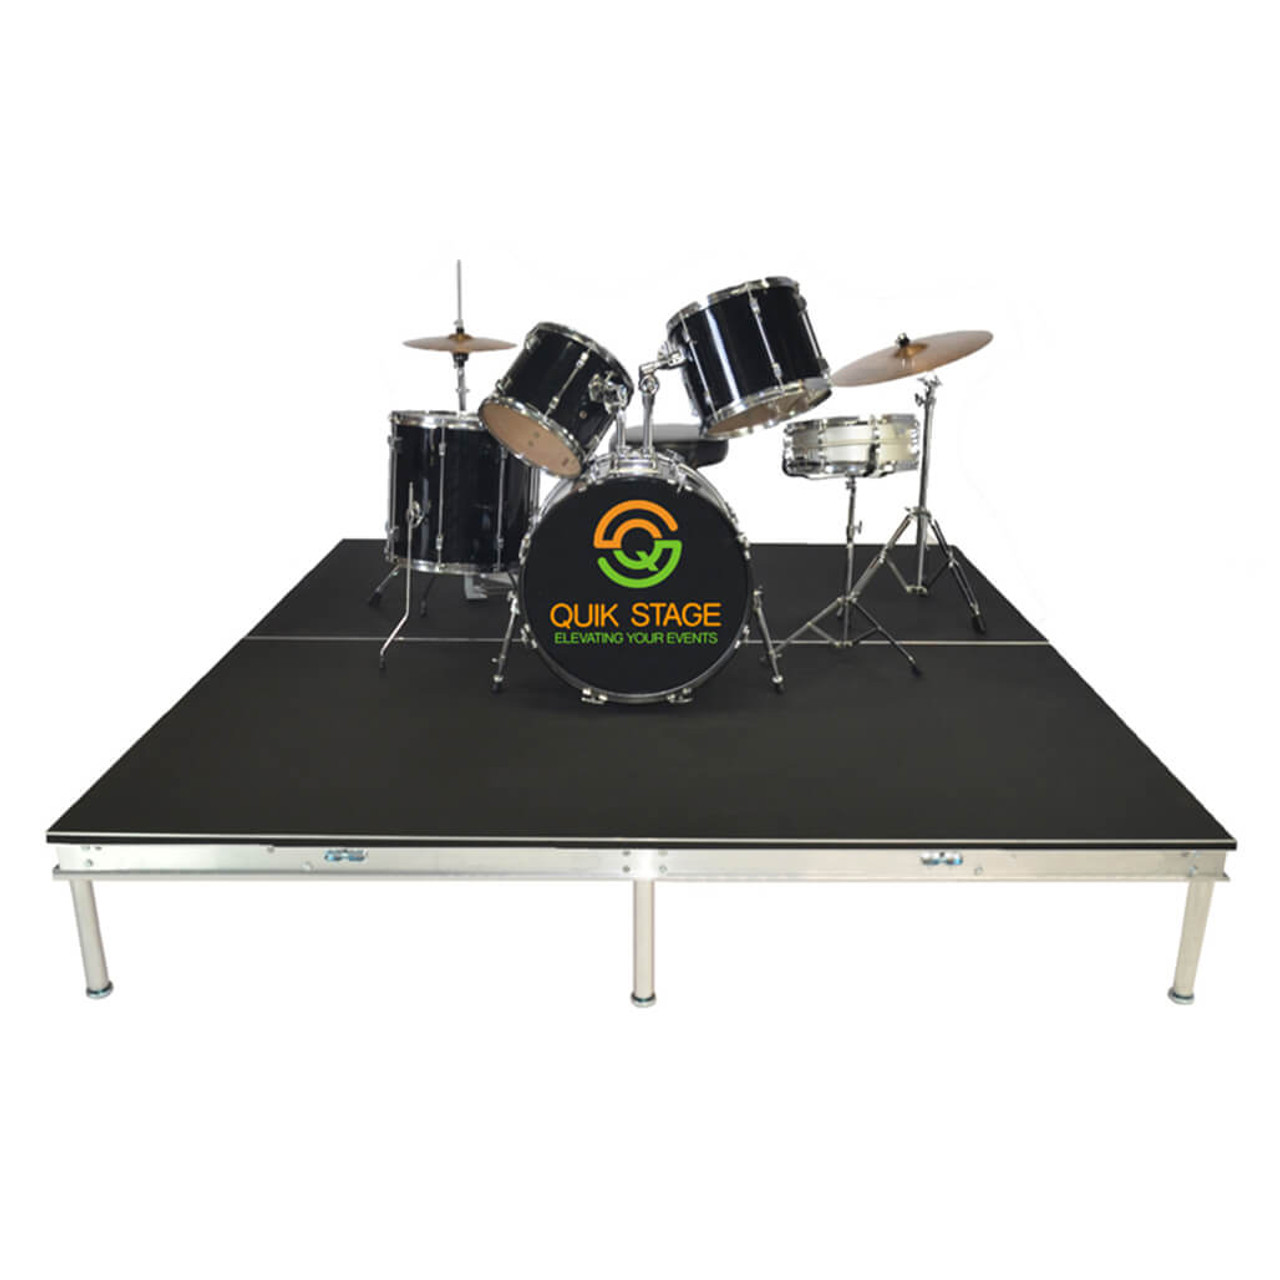 Quik Stage 12' x 16' High Portable Stage Package with Black Polyvinyl Non-Skid Surface. Additional Heights and Surfaces Available - Drum Riser without skirting